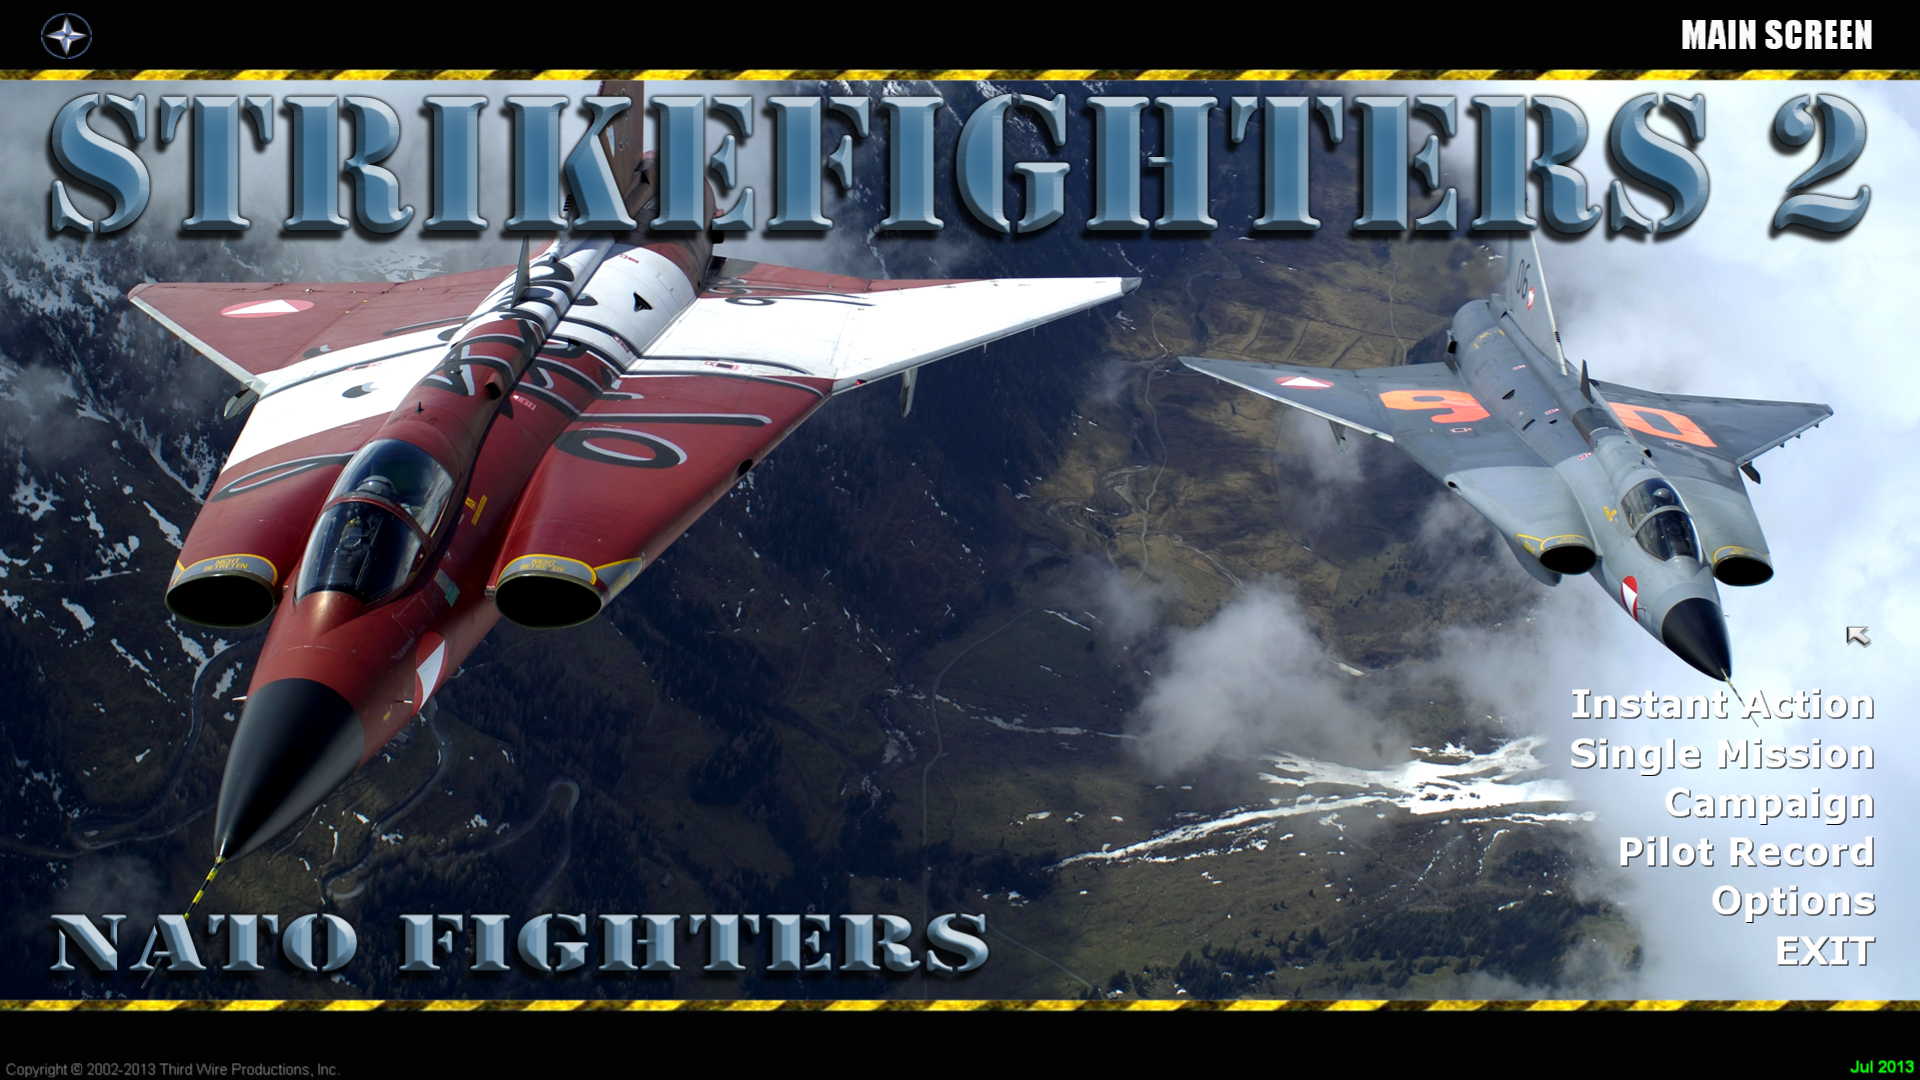 Strikefighters2 NATO Fighters 5 Hi-Res 1920x1080 Menu Screens and Music!